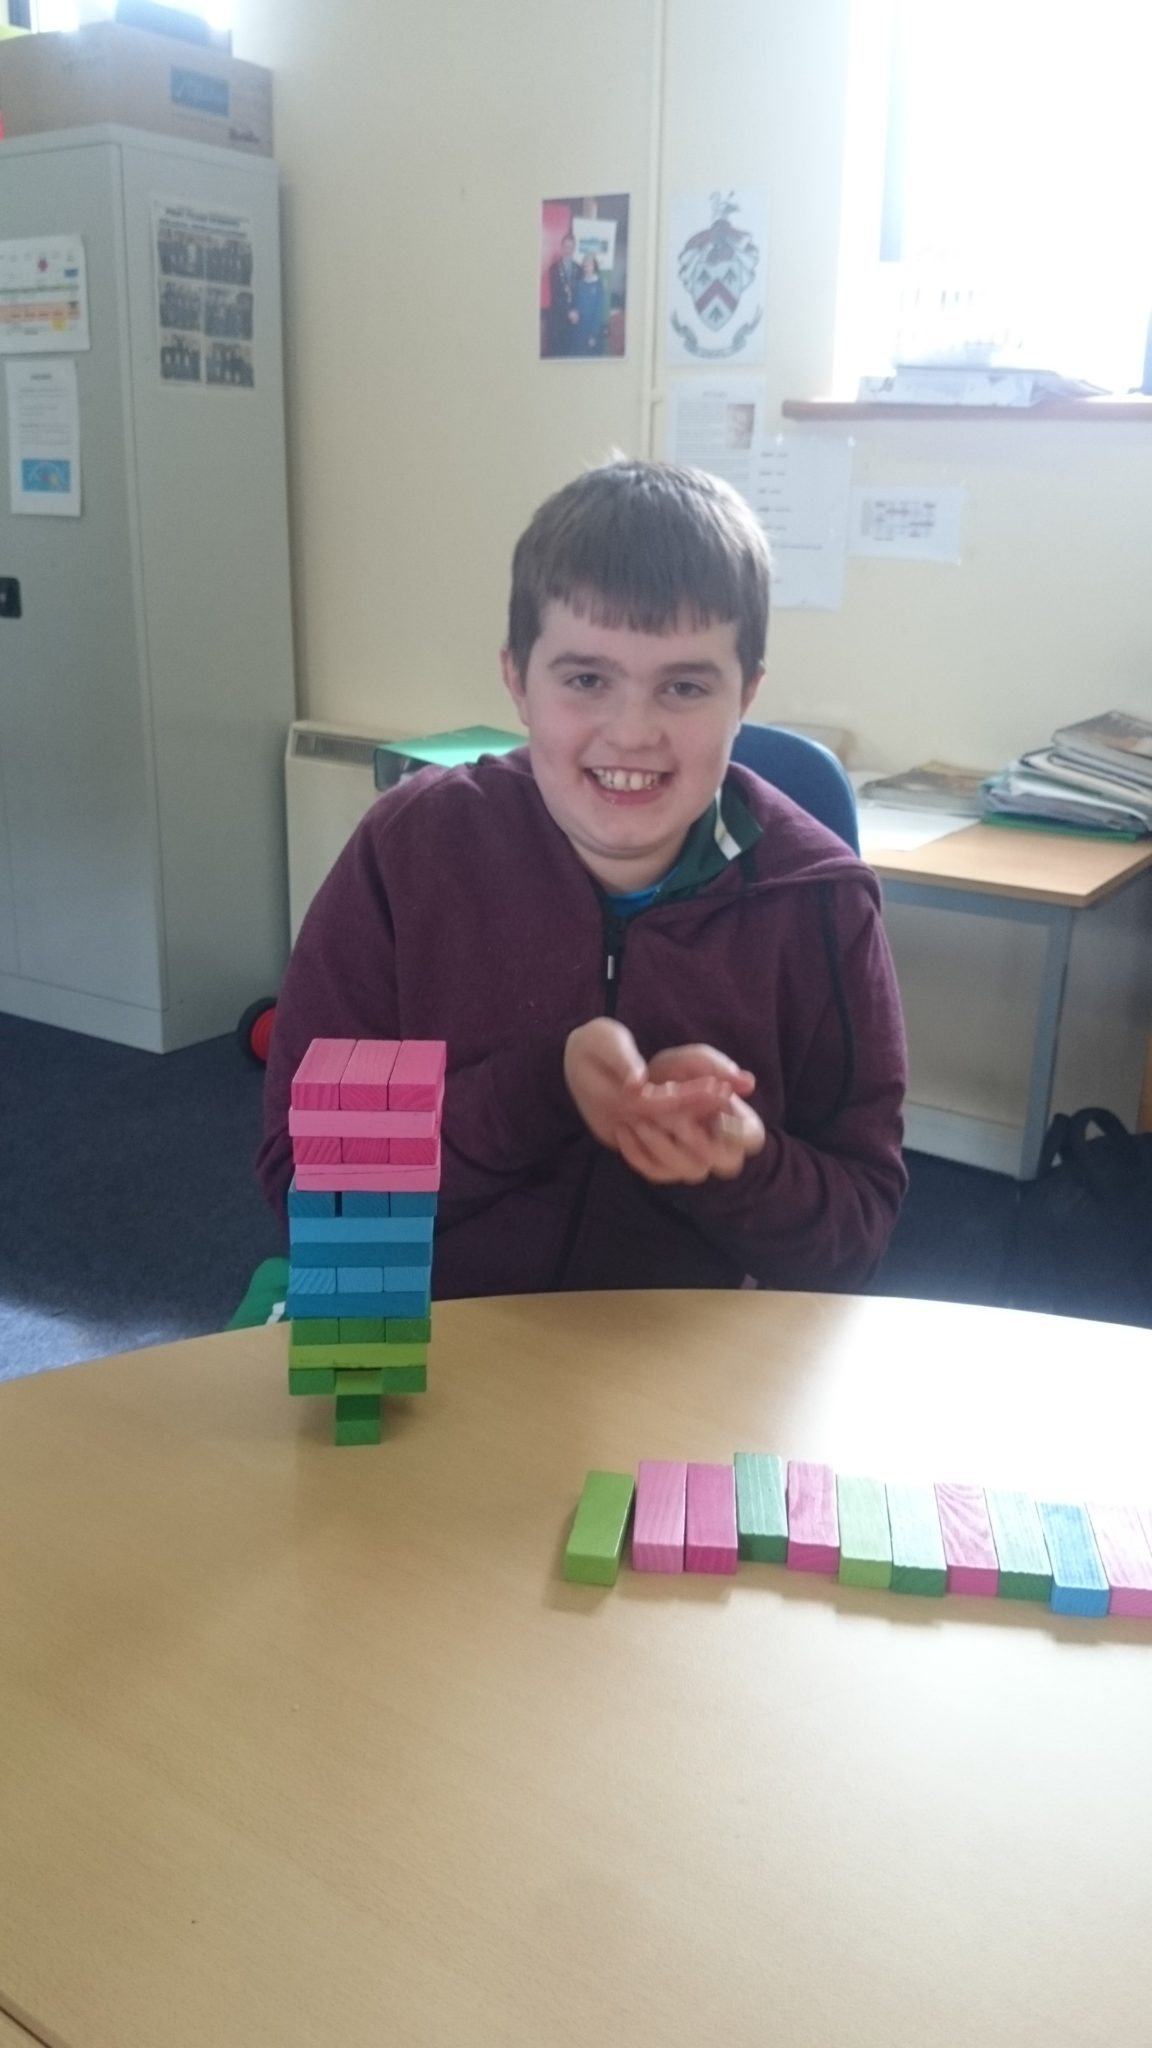 Alan Wallace enjoying the activities of Active Week in Desmond College April 13-17 2015